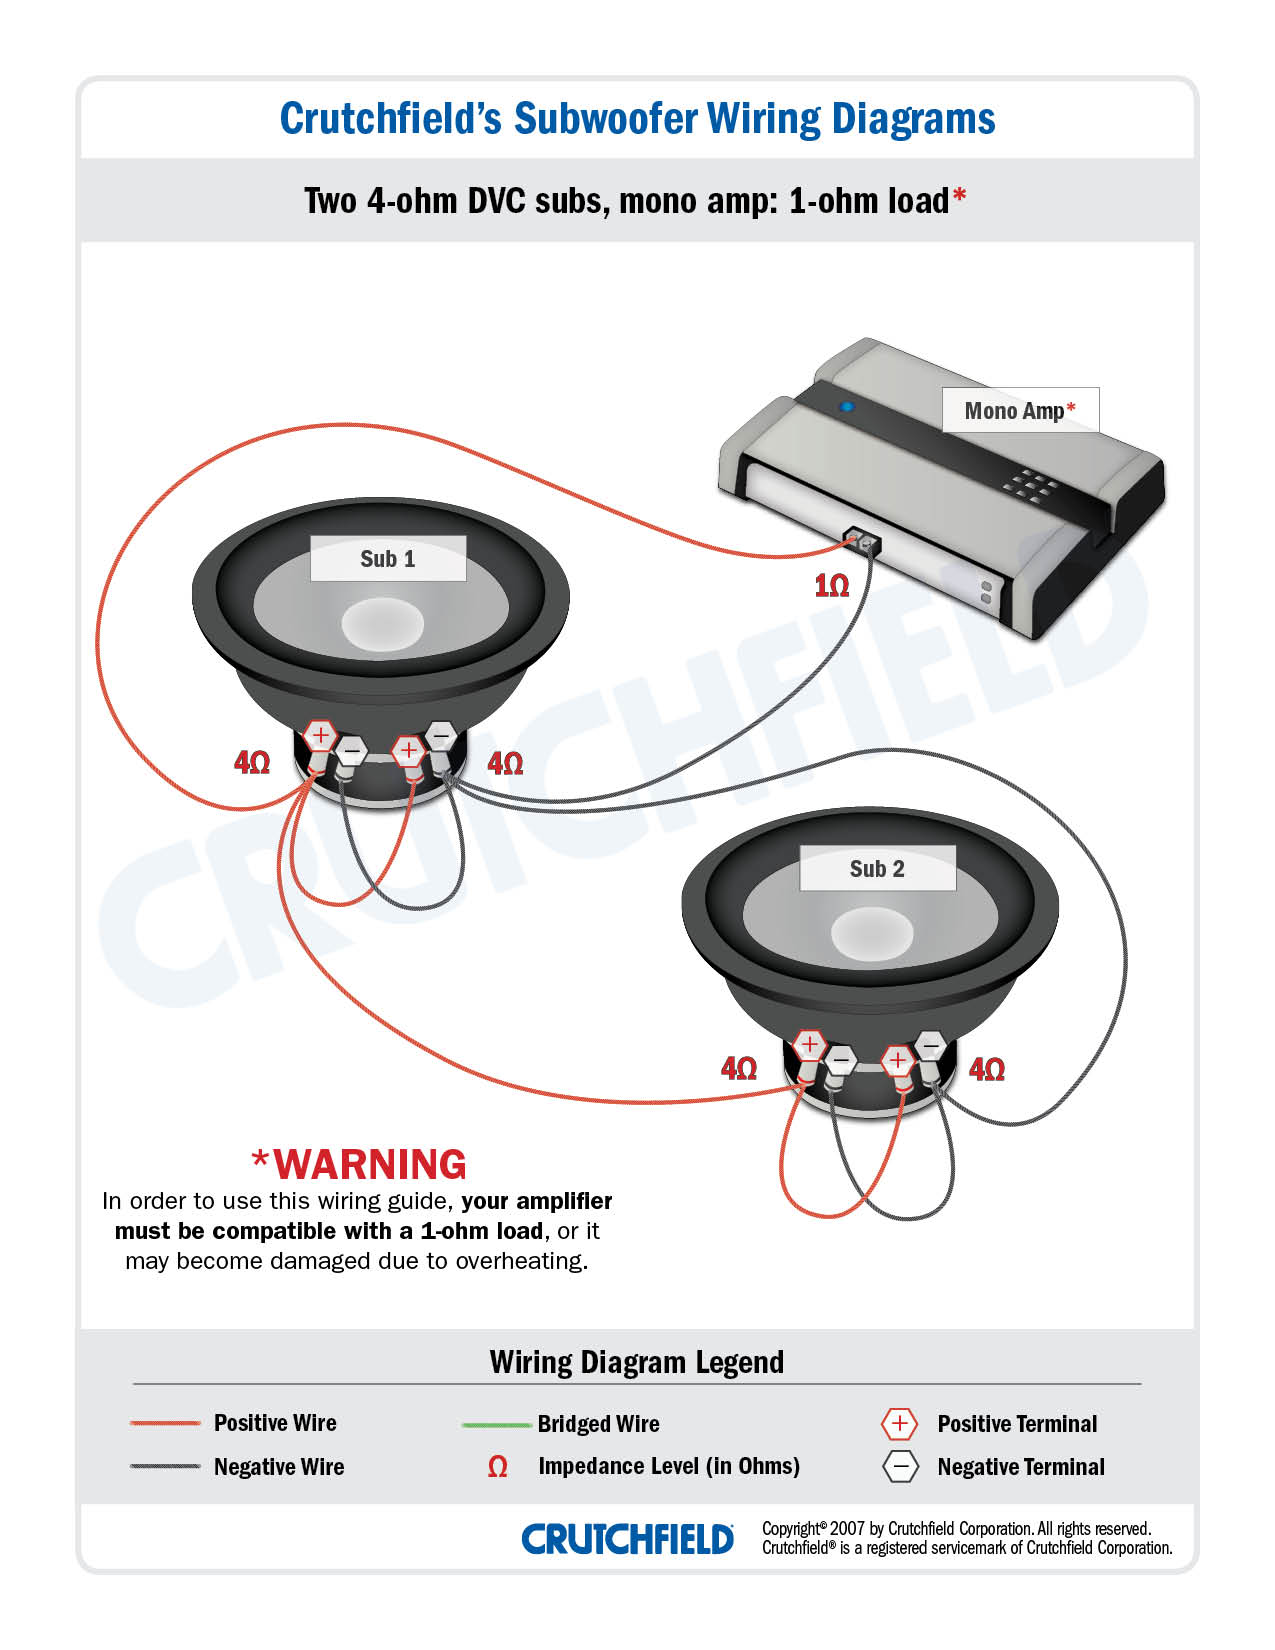 Subwoofer Wiring Diagram Ohms: Subwoofer Wiring Diagrams u2014 How to Wire Your Subsrh:crutchfield.com,Design